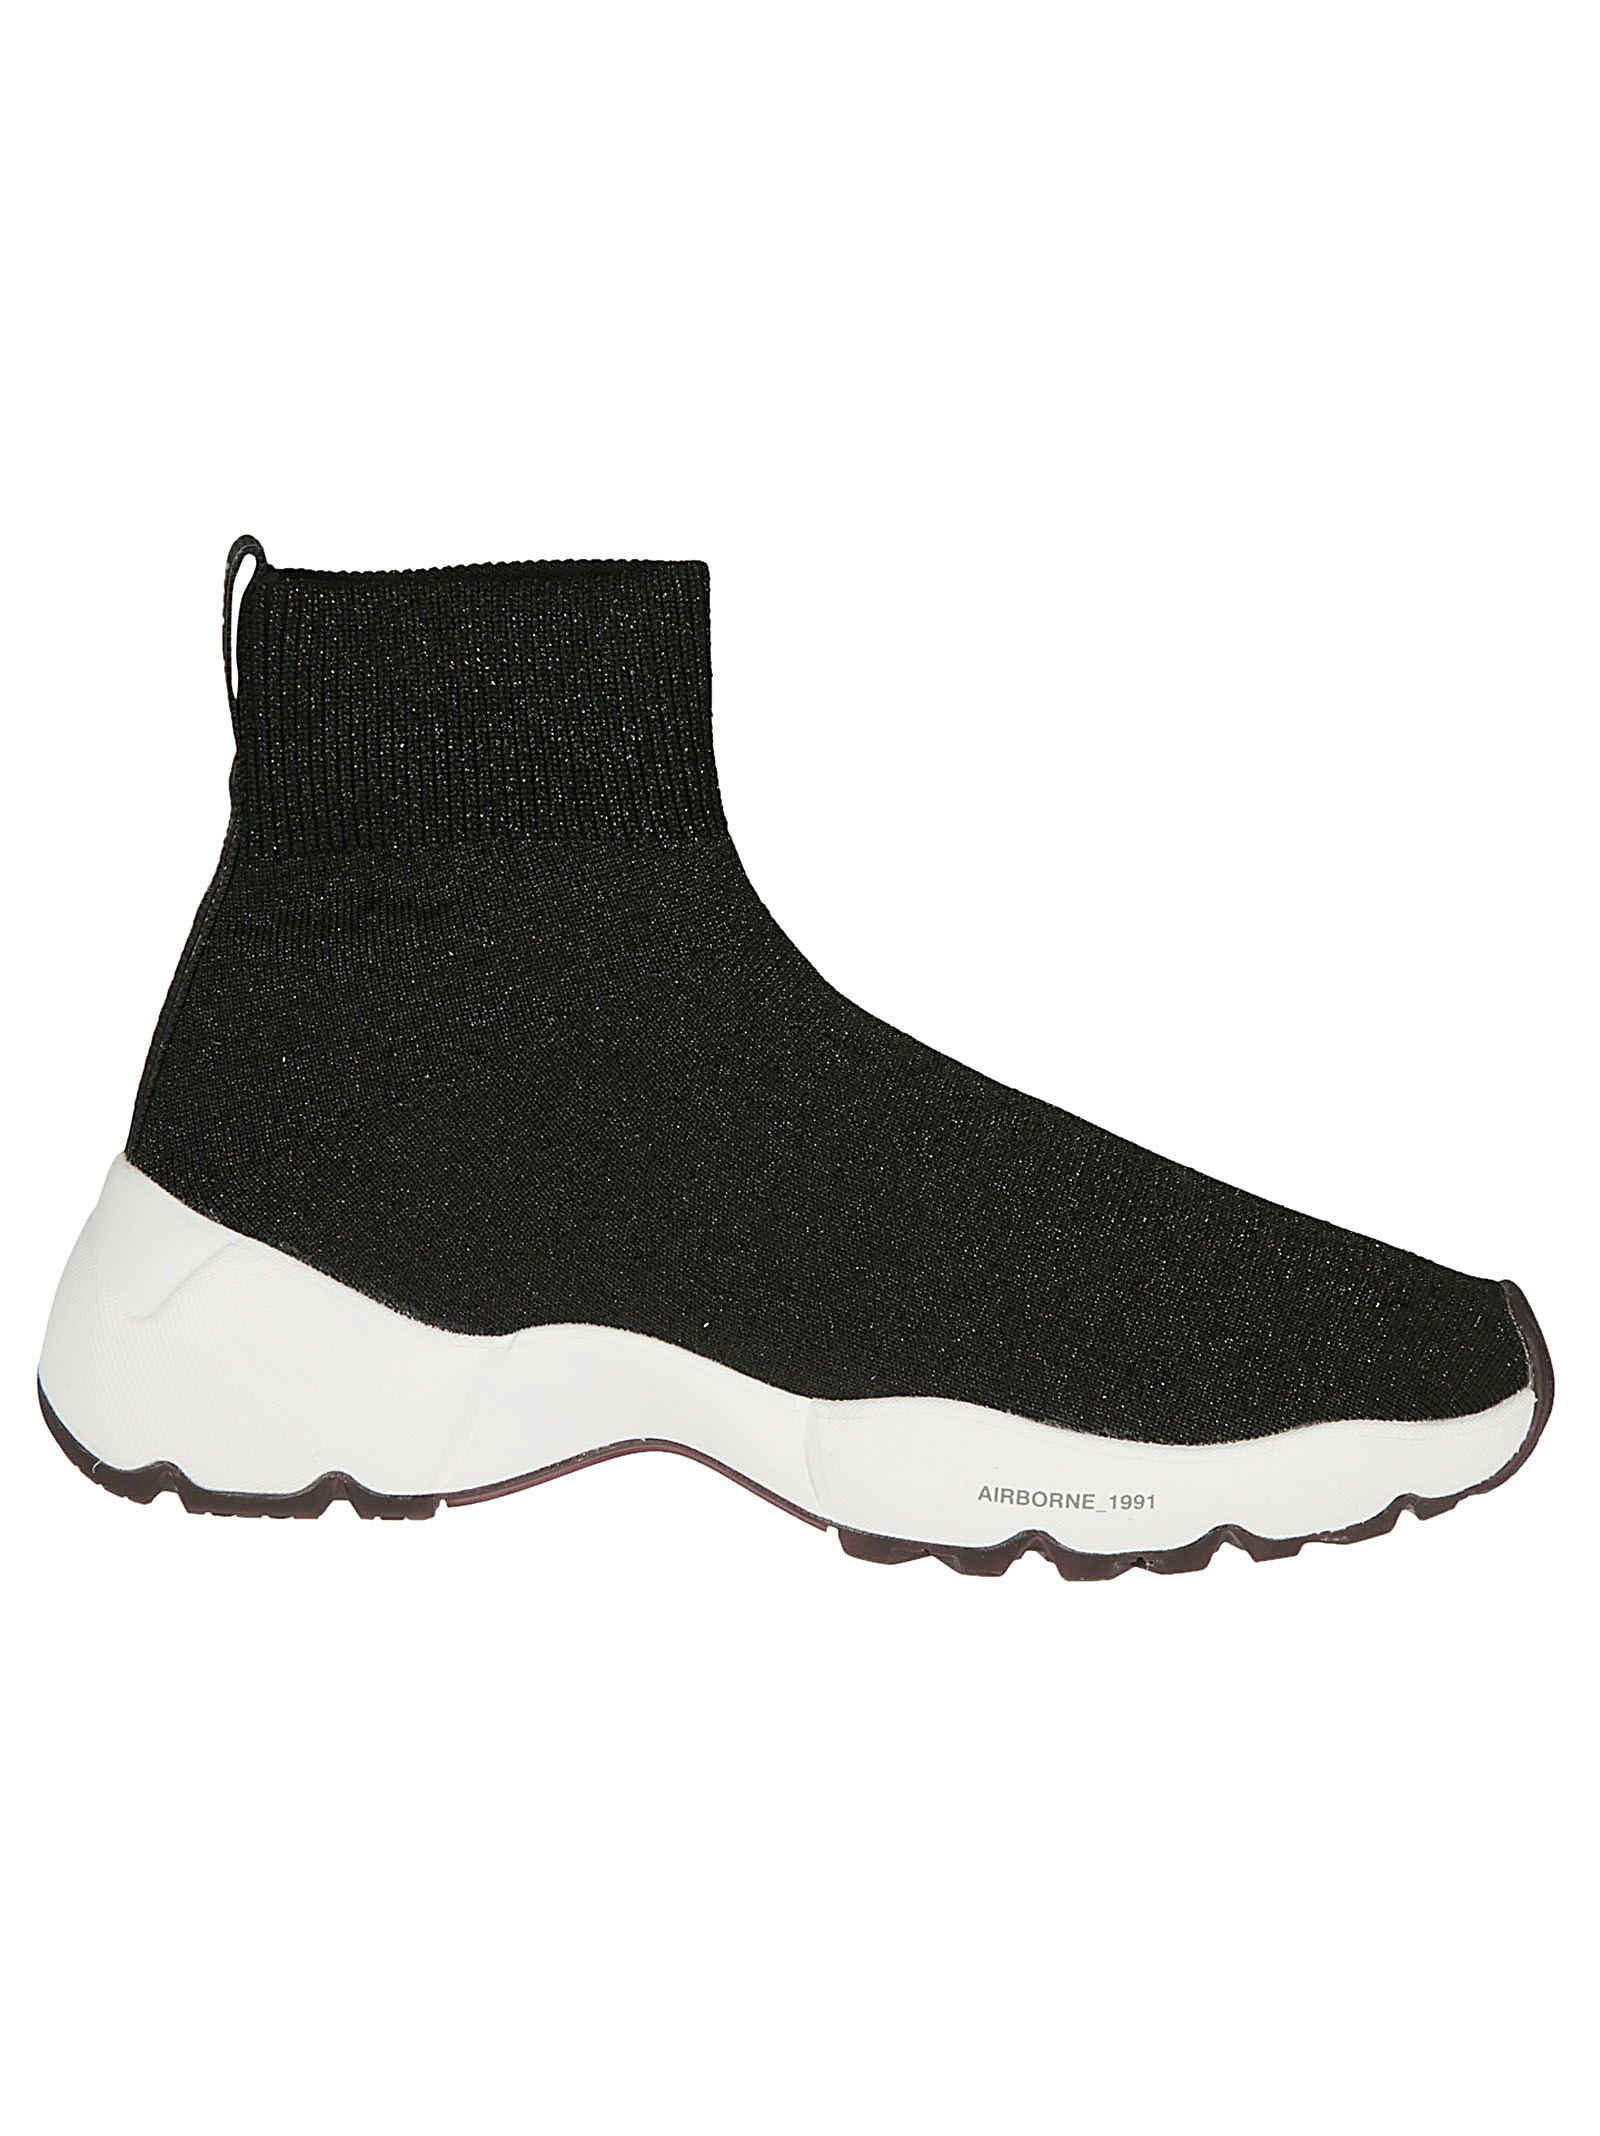 OXS Oxs Airborne Sock Sneakers in Nero